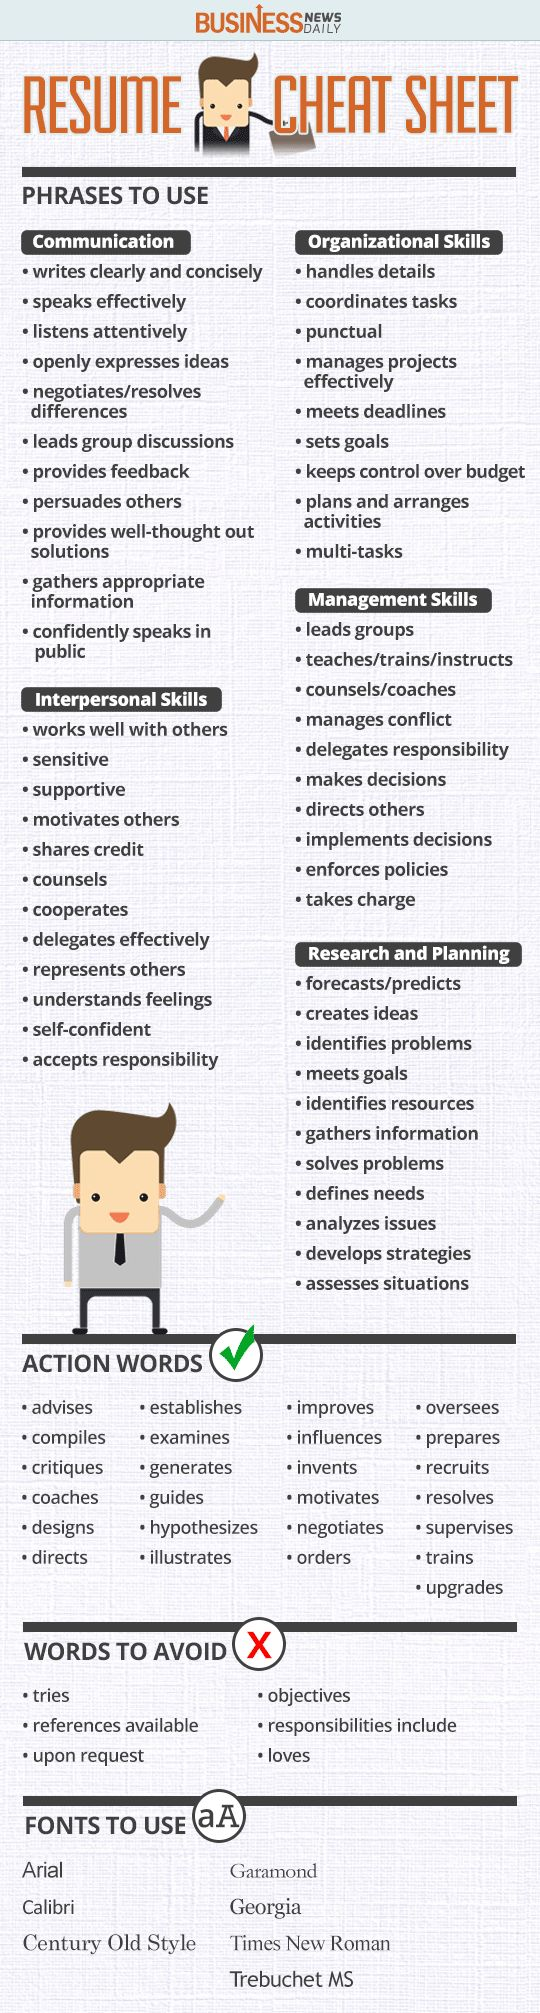 Opposenewapstandardsus  Wonderful  Ideas About Resume On Pinterest  Cv Format Resume Cv And  With Heavenly Resume Cheat Sheet Infographic Andrews Almost Done With A Complete Unit On Employment Which With Delectable Resume Skills Summary Examples Also Business Development Resume Sample In Addition Resumes Accounting And Cna Objective Resume Examples As Well As Pages Resume Templates Free Additionally Sales Customer Service Resume From Pinterestcom With Opposenewapstandardsus  Heavenly  Ideas About Resume On Pinterest  Cv Format Resume Cv And  With Delectable Resume Cheat Sheet Infographic Andrews Almost Done With A Complete Unit On Employment Which And Wonderful Resume Skills Summary Examples Also Business Development Resume Sample In Addition Resumes Accounting From Pinterestcom